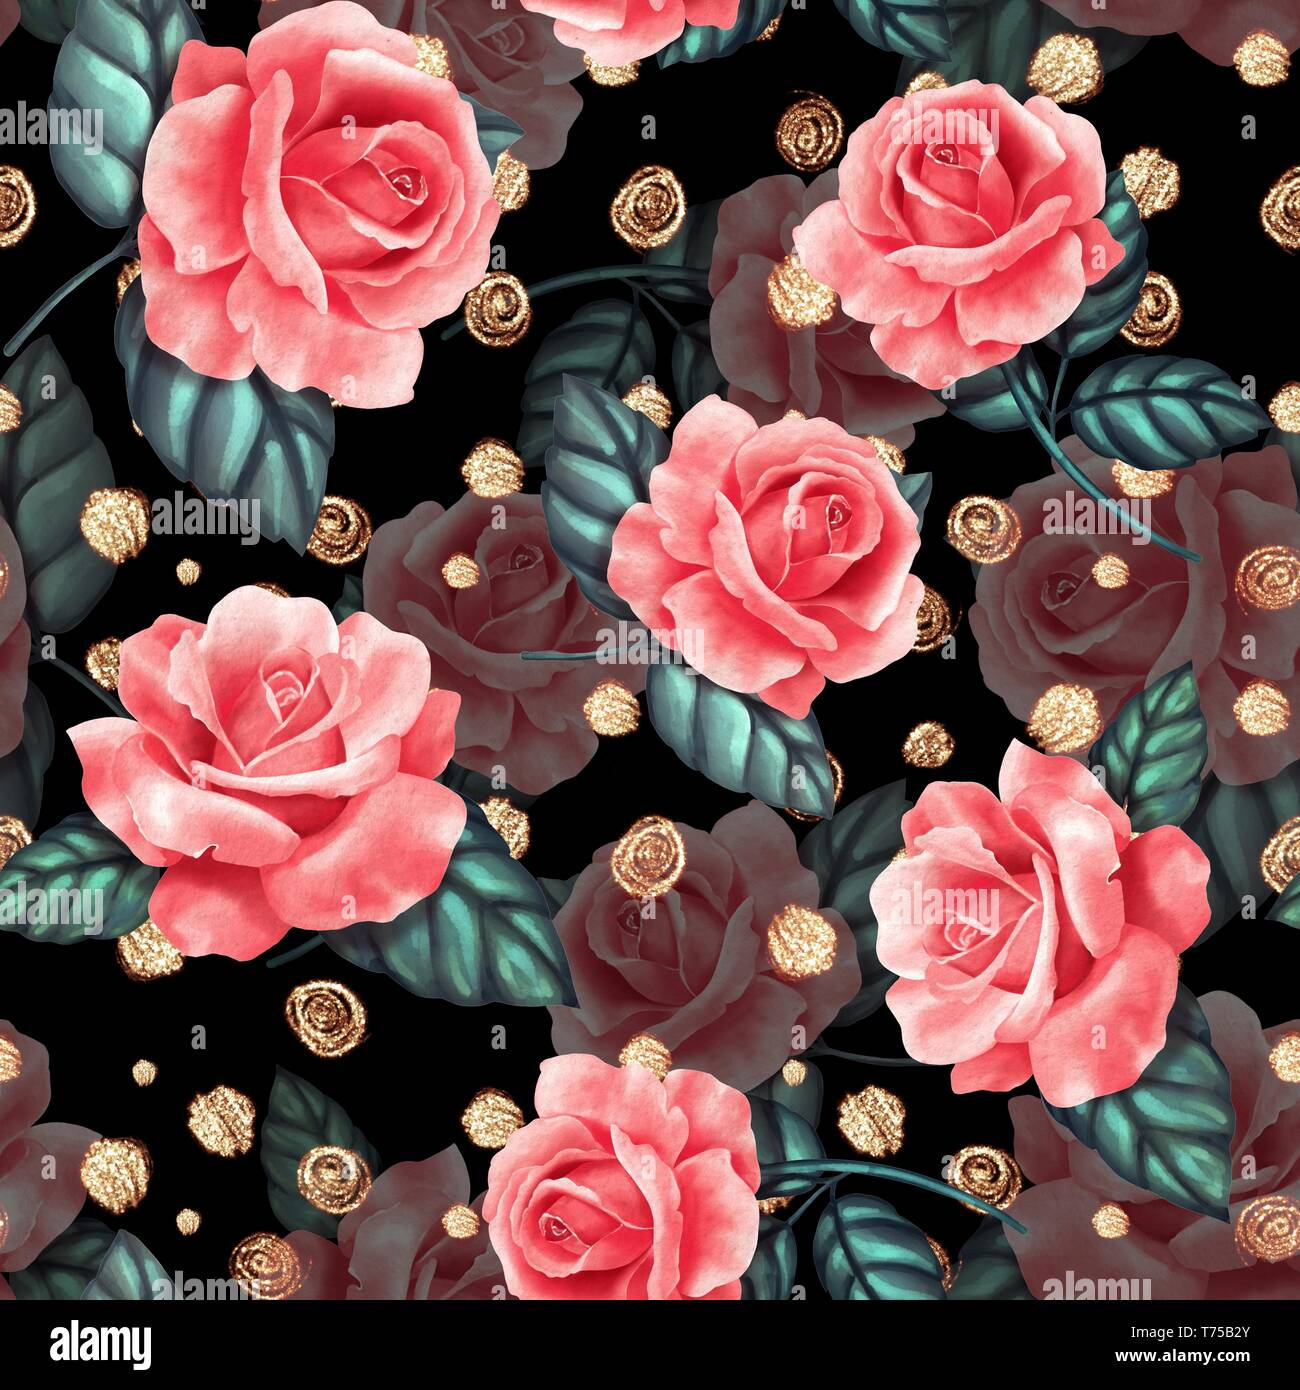 Seamless Floral Pattern With Red Roses On Black Background Stock